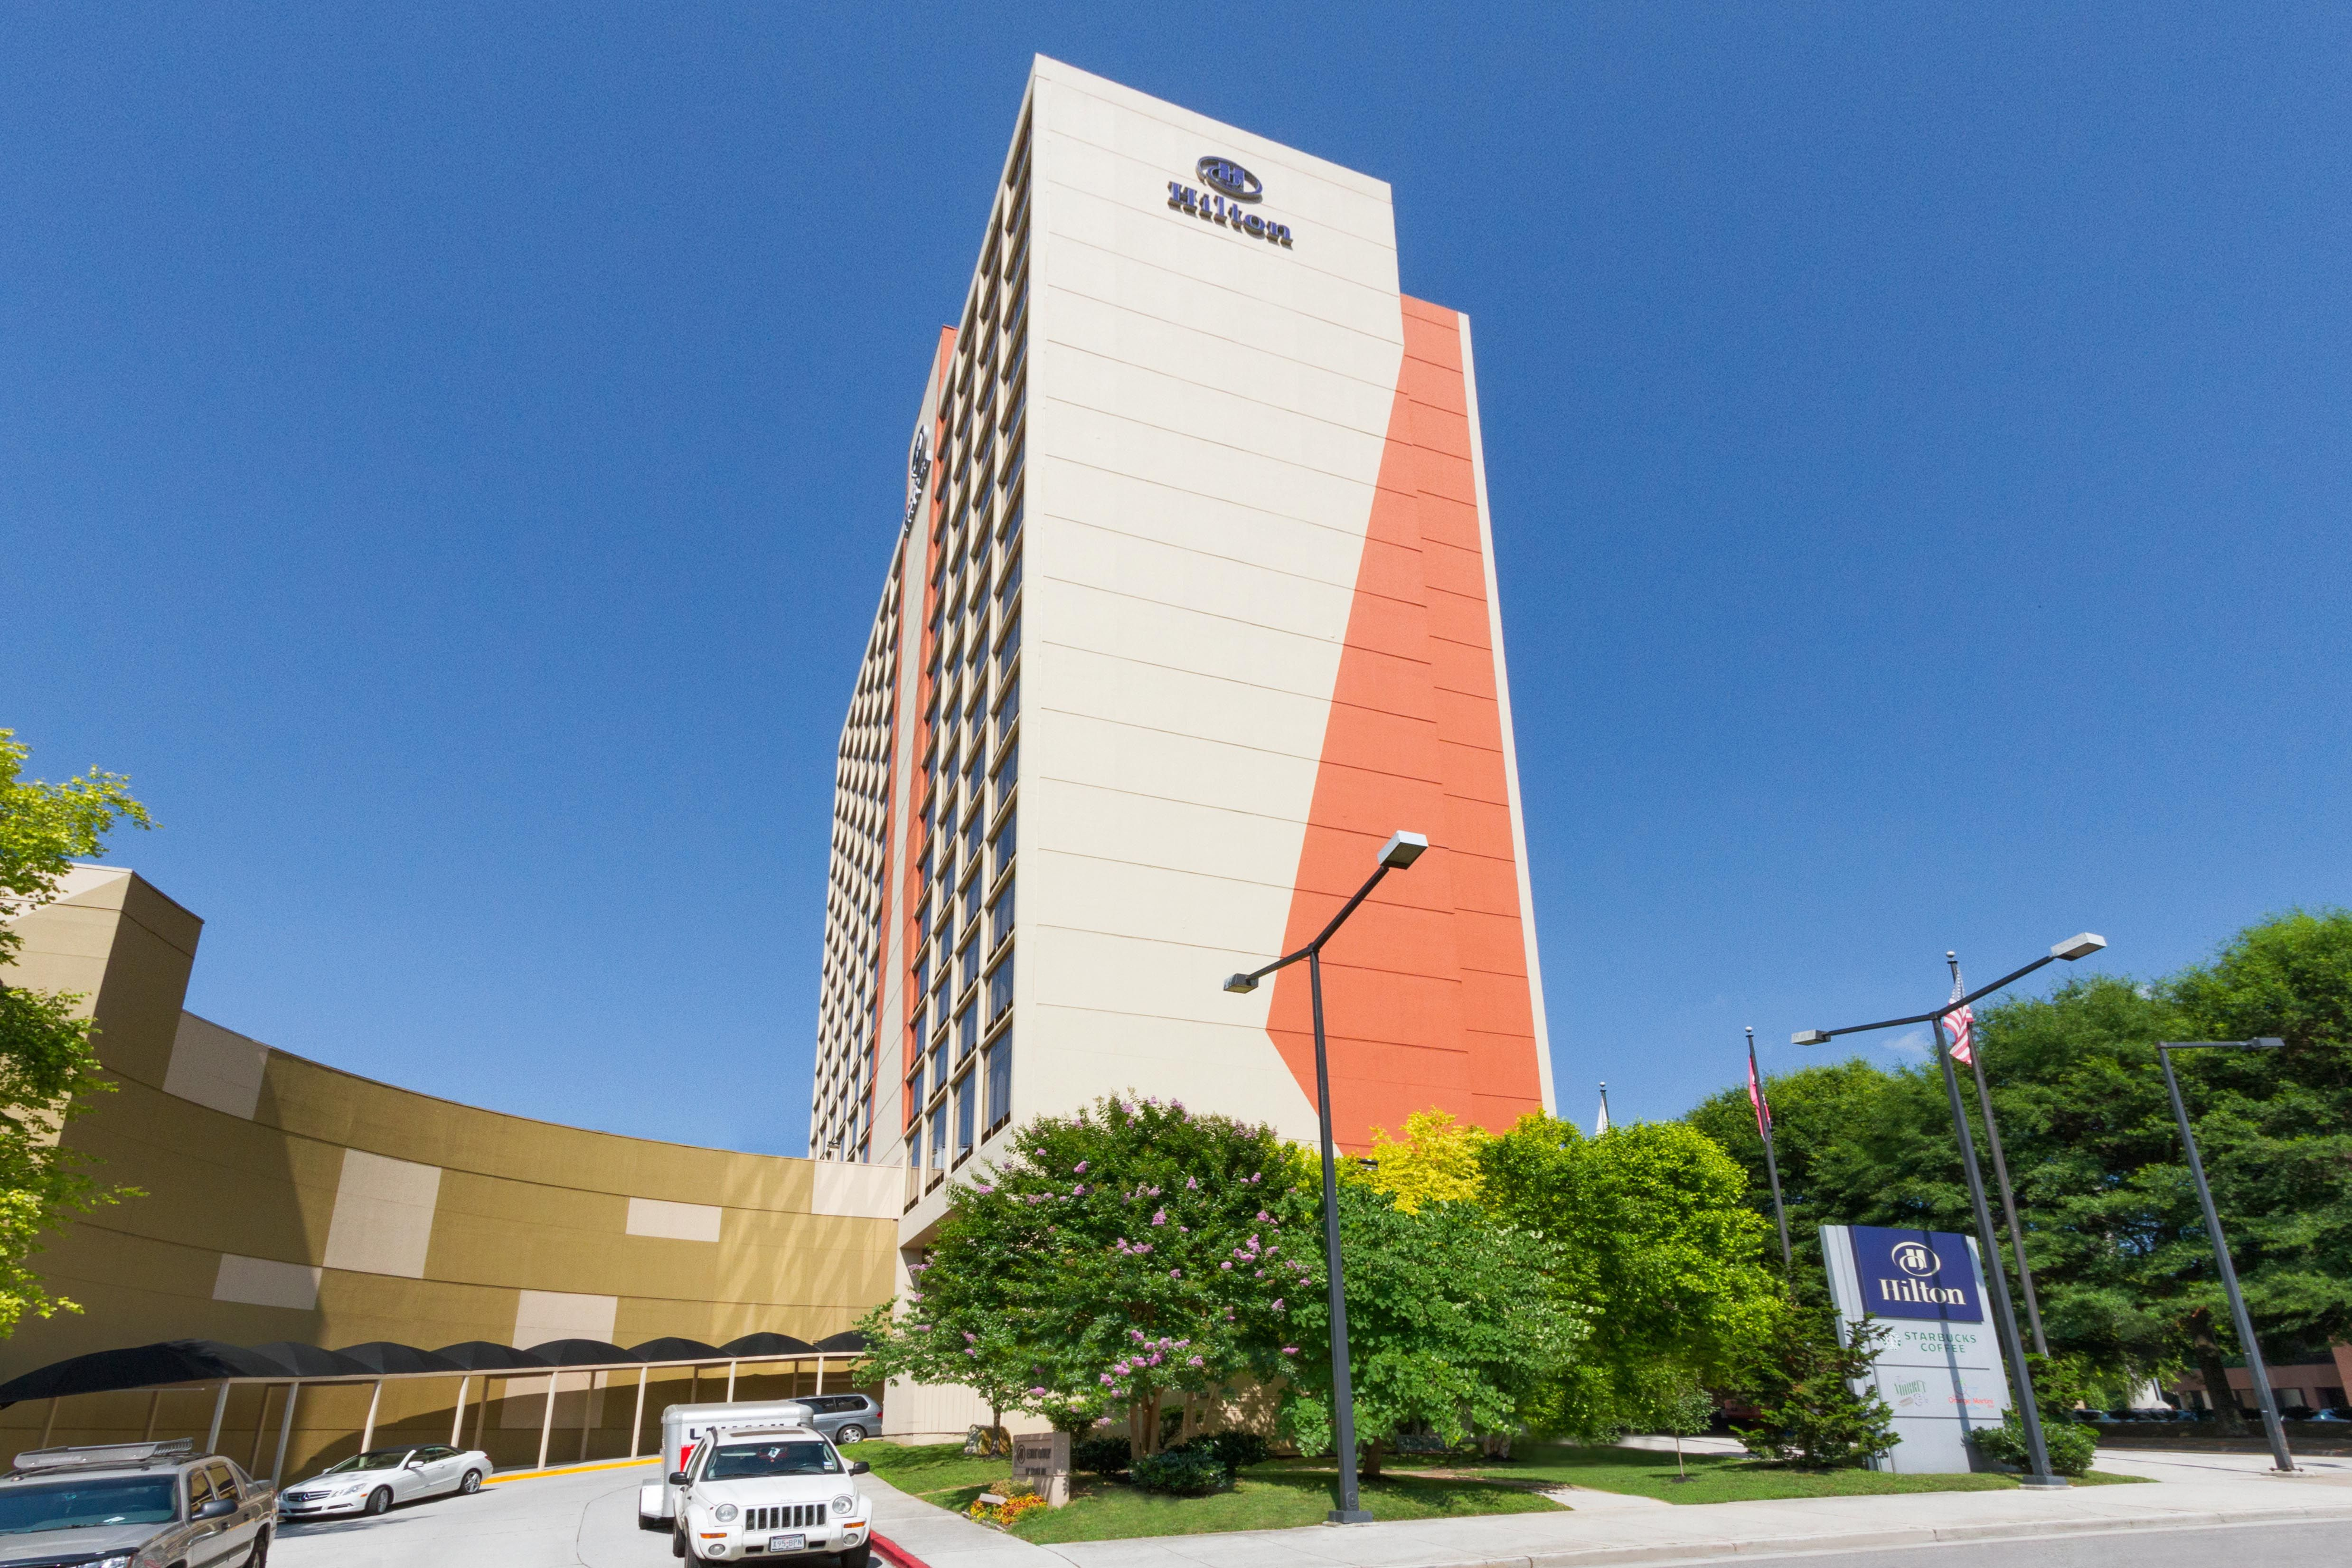 The Newly Renovated Hilton Knoxville Located In The Heart Of Downtown Knoxville Tennessee Hiltonknoxville Downt Downtown Business District Meeting Planning